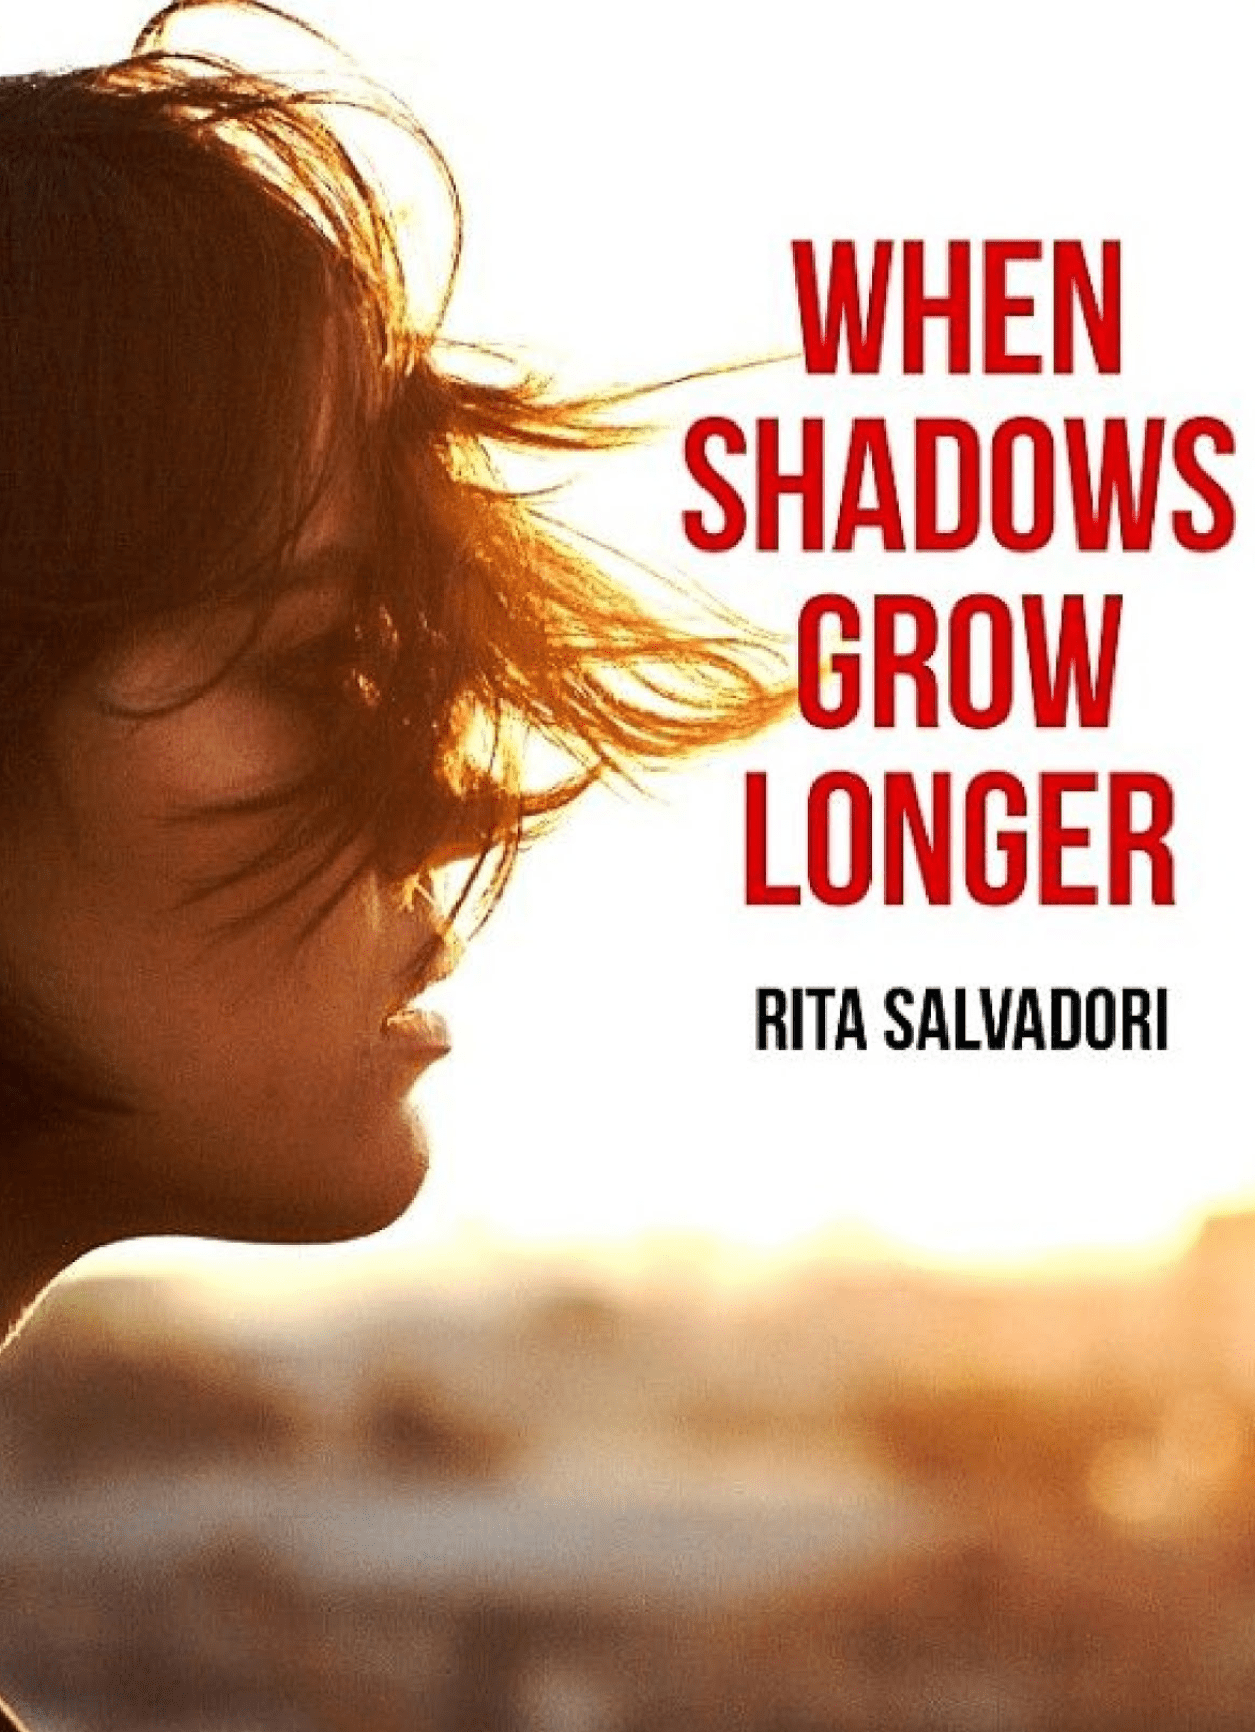 When shadows grow longer